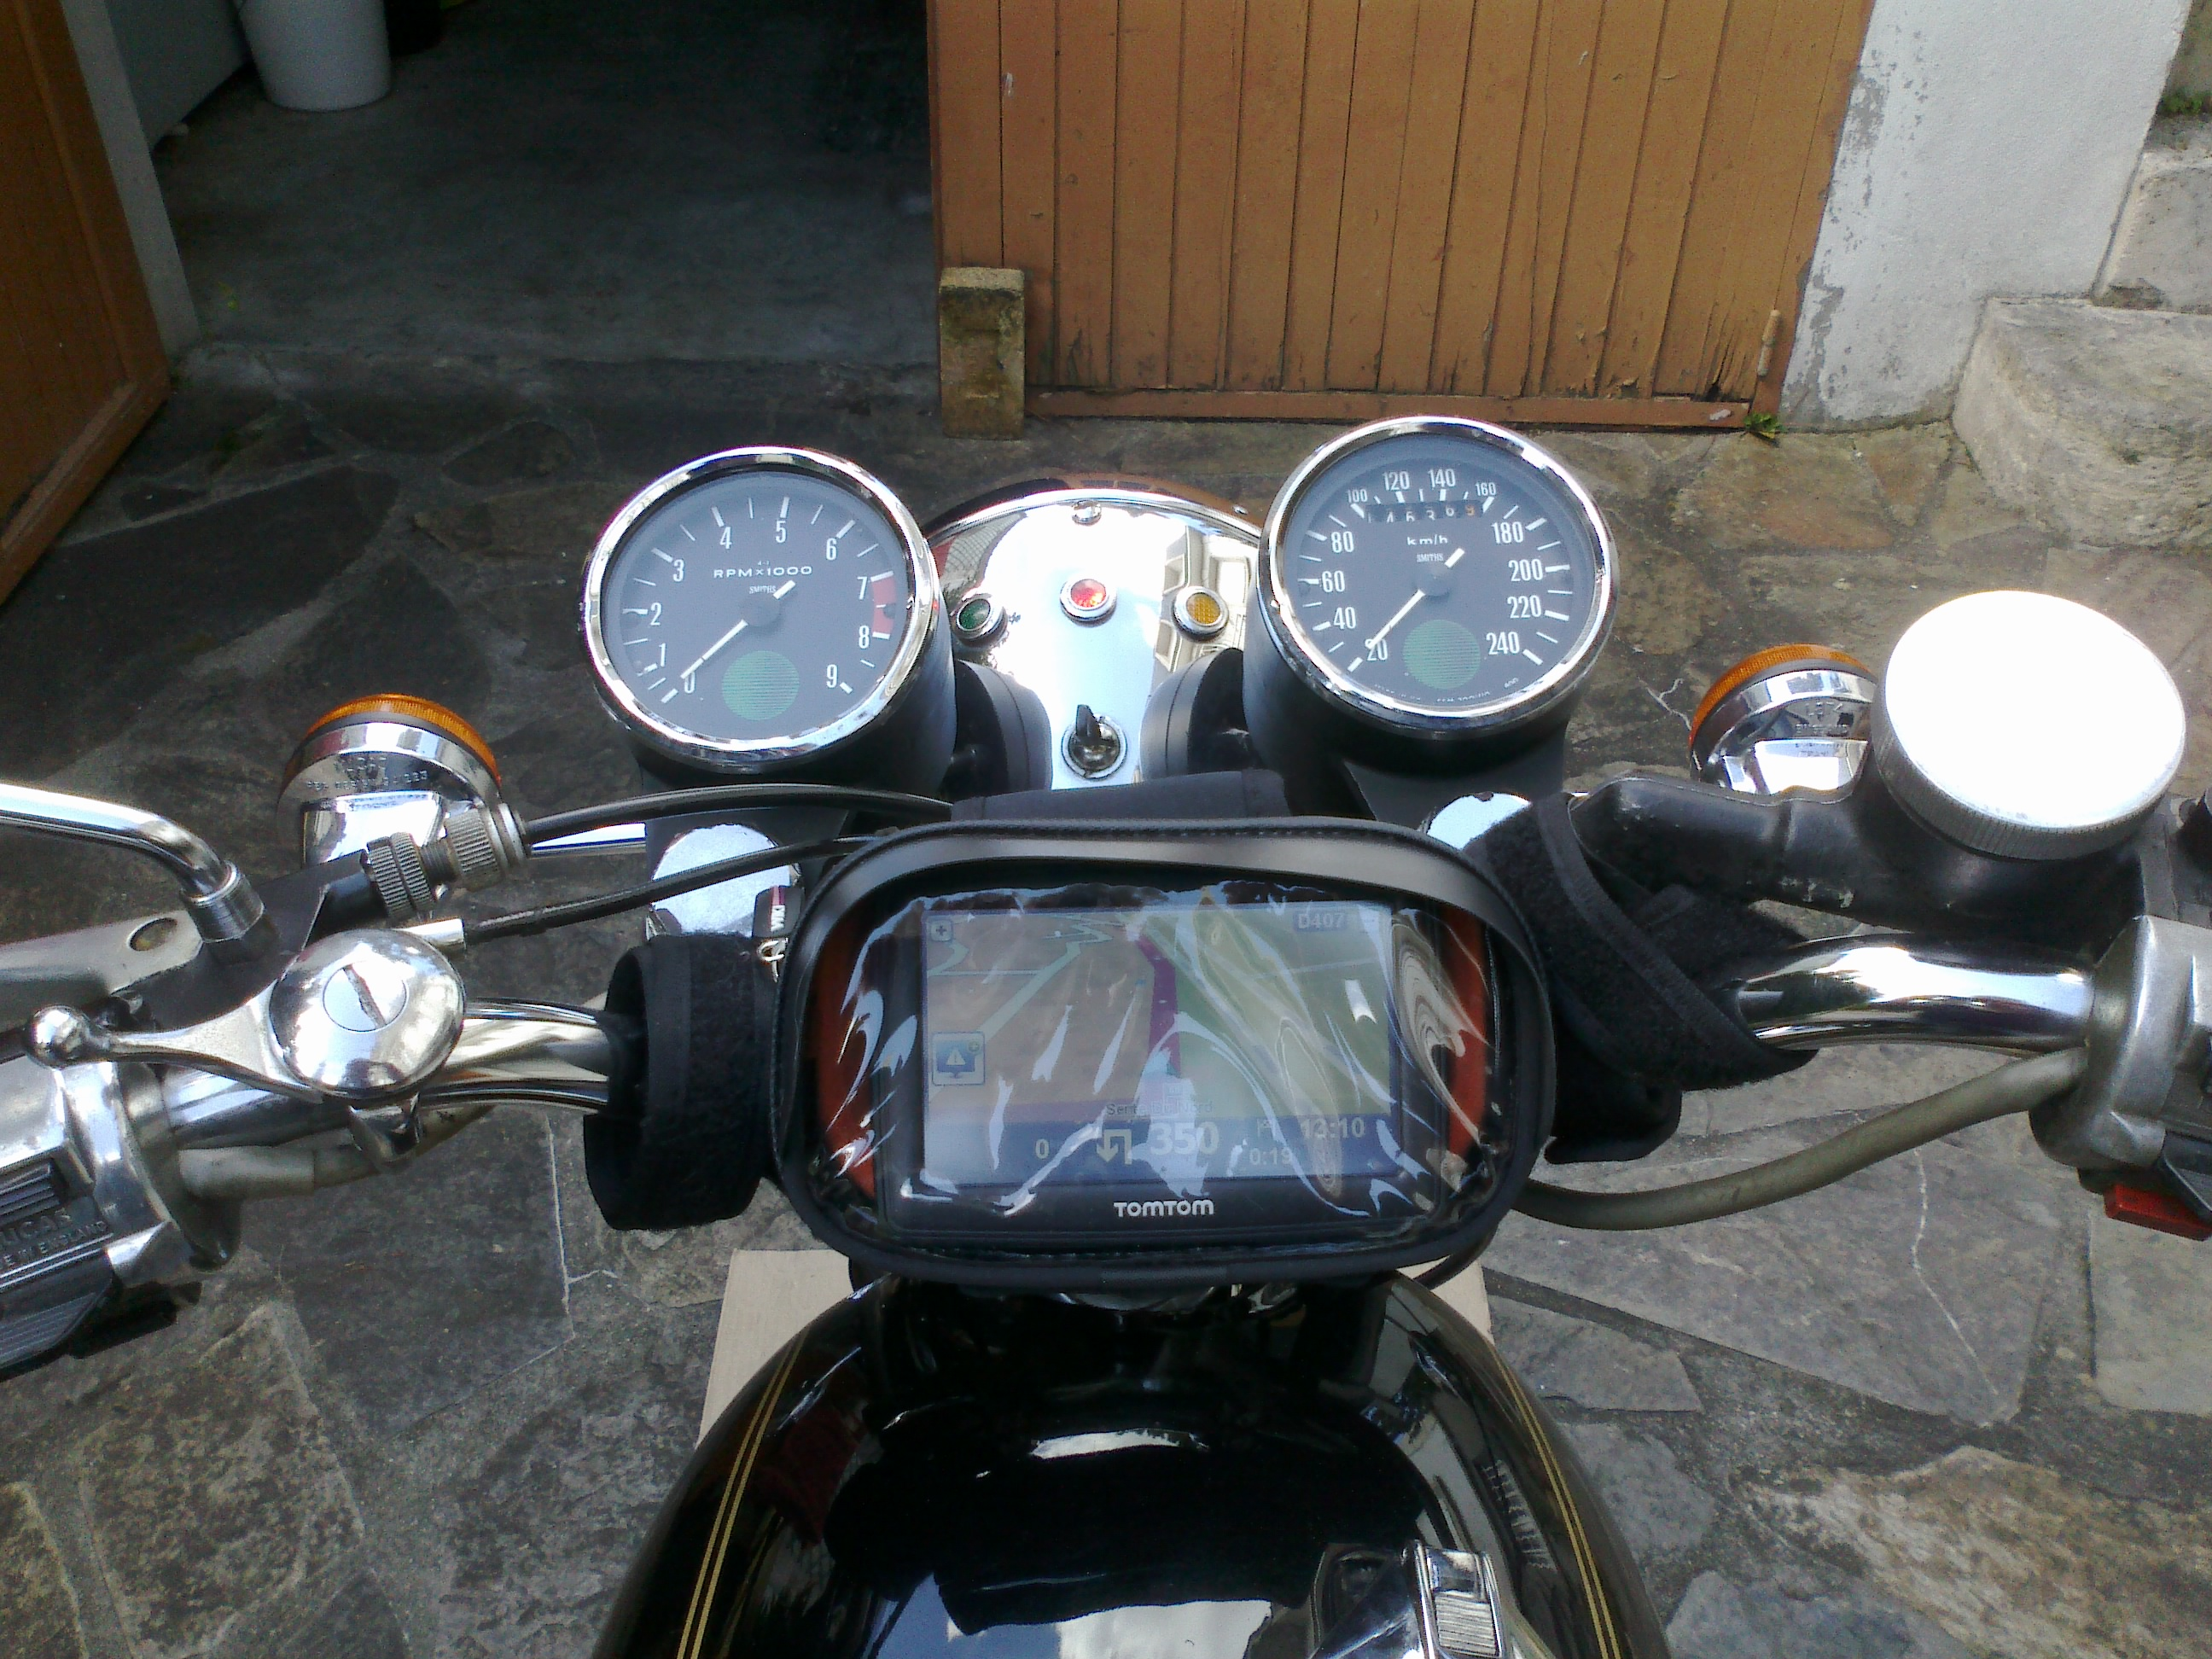 Norton with Tomtom